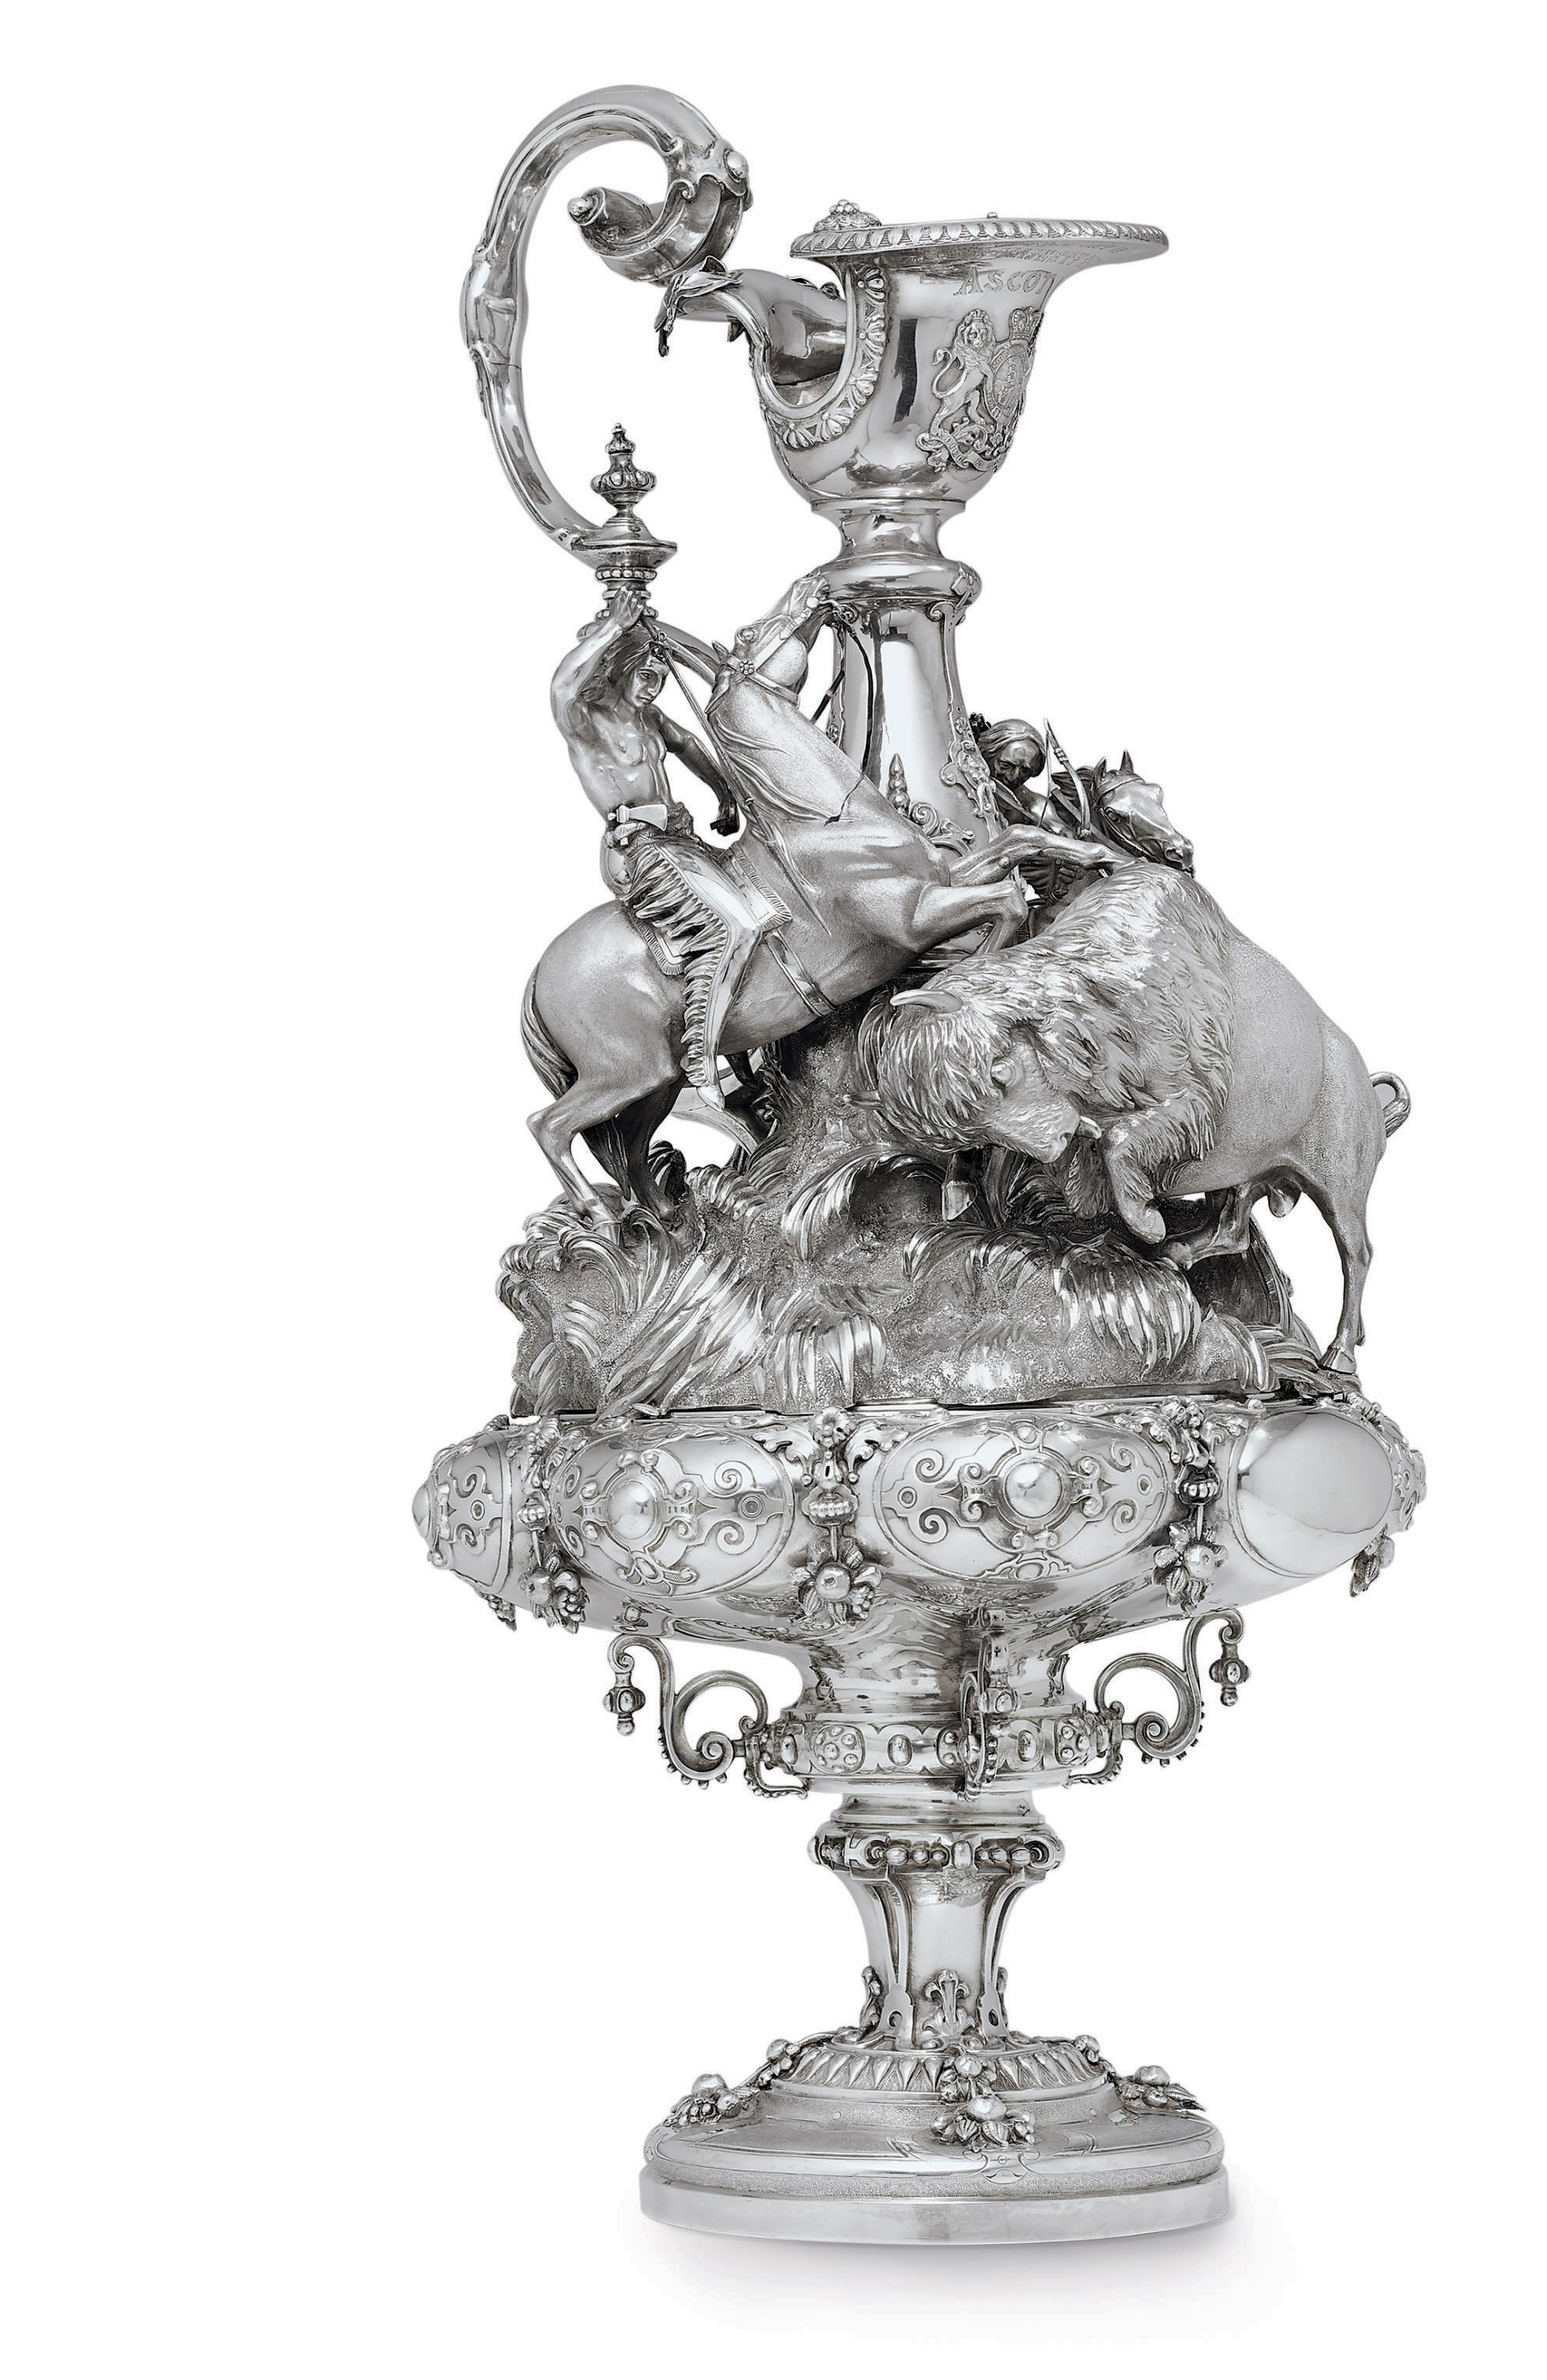 THE QUEEN'S CUP, ASCOT, 1861: A VICTORIAN SILVER TROPHY